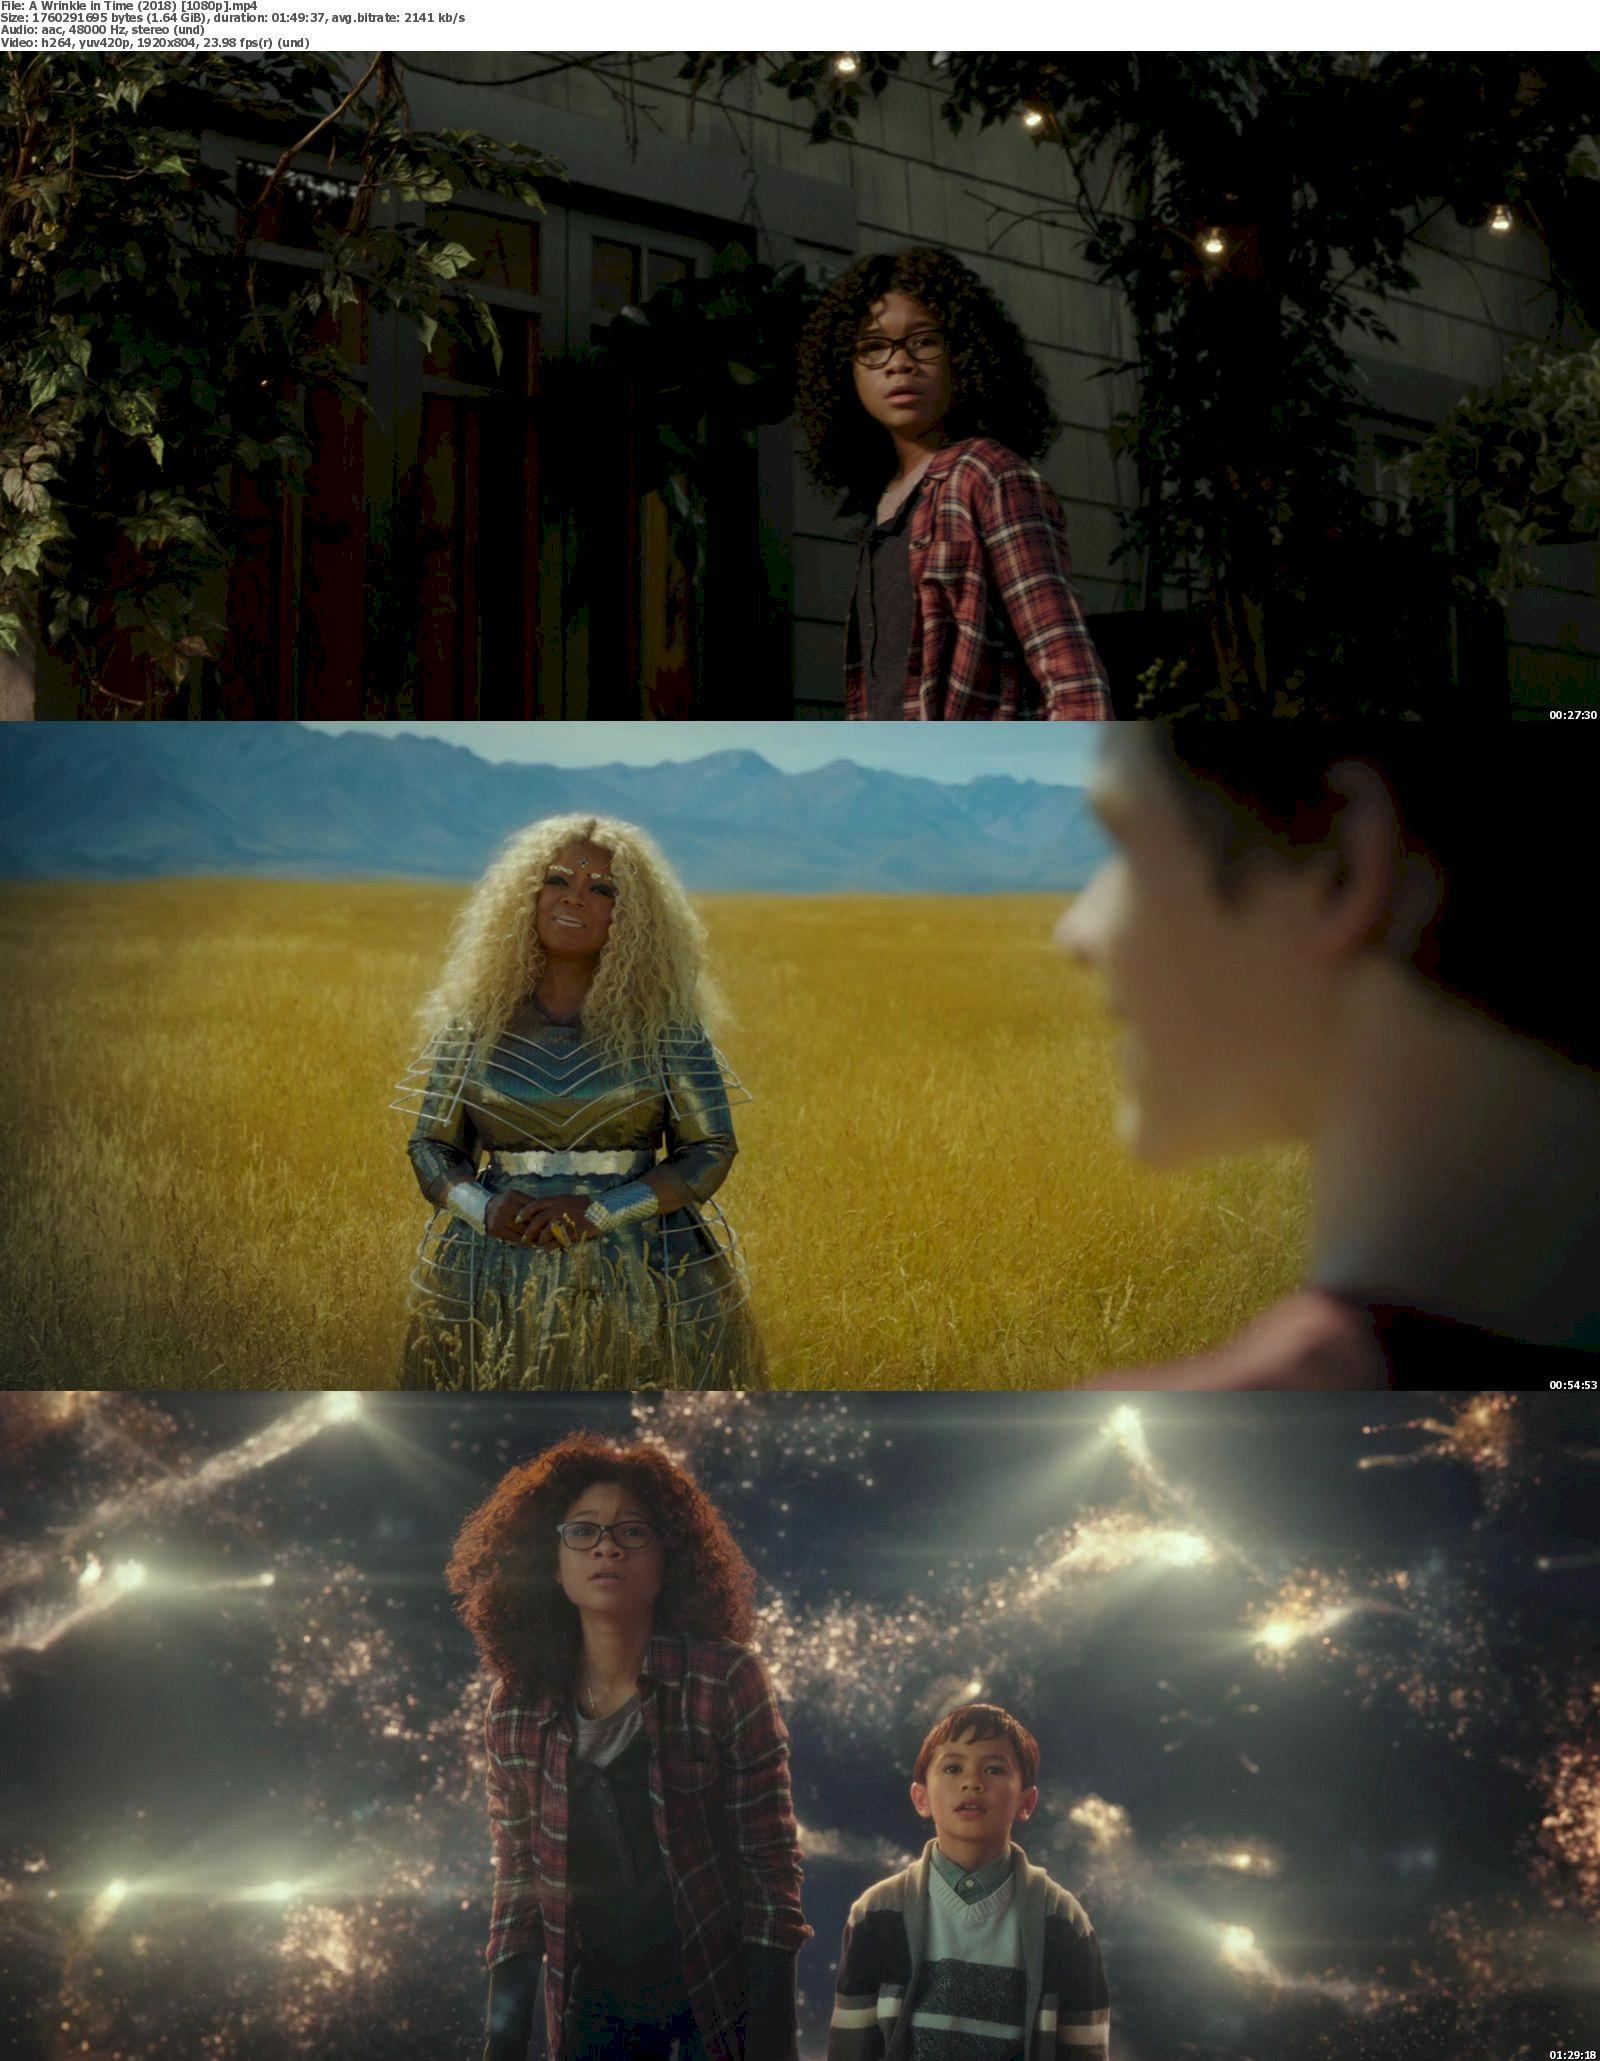 A Wrinkle in Time (2018) [720p & 1080p] Bluray Free Download 1080p Screenshot